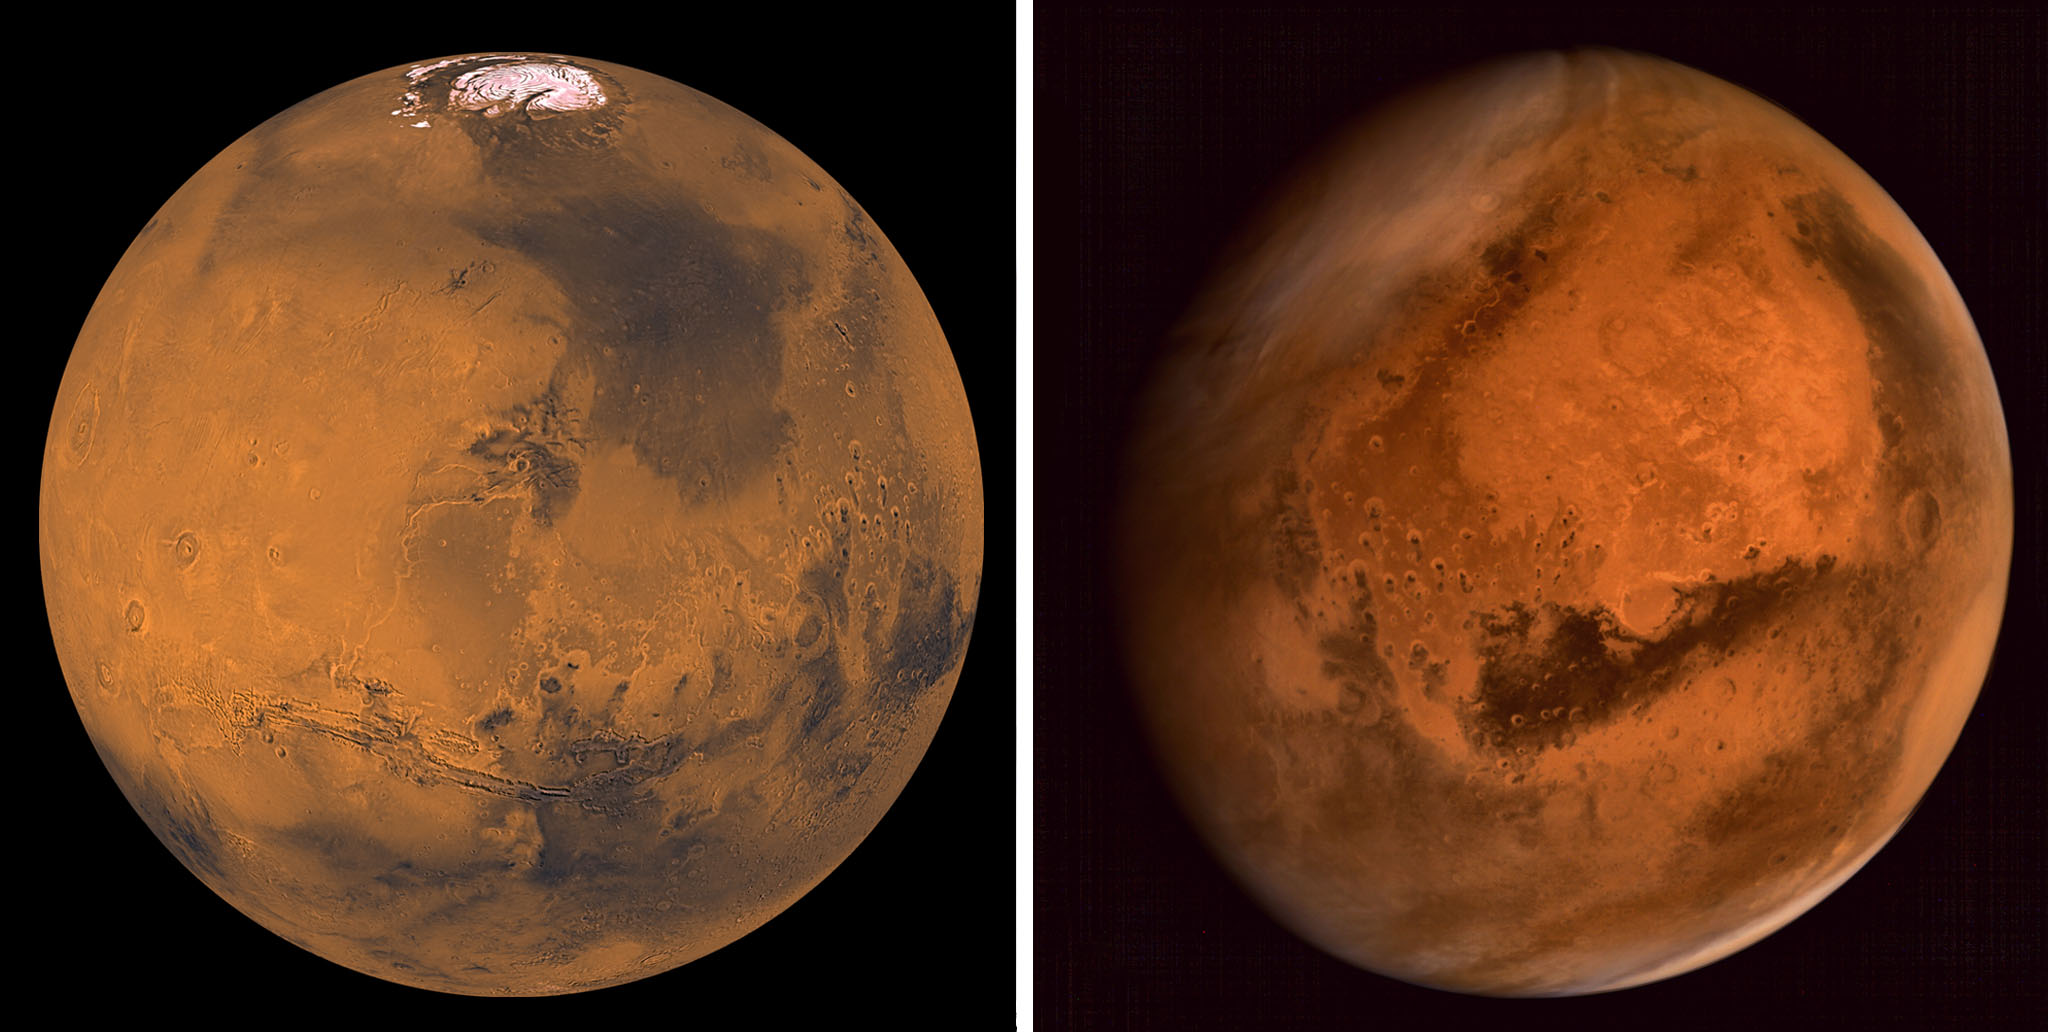 Left: A mosaic image of Mars made by NASA. Right: Mars, taken by the Mars Colour Camera onboard India's Mars Orbiter Spacecraft.